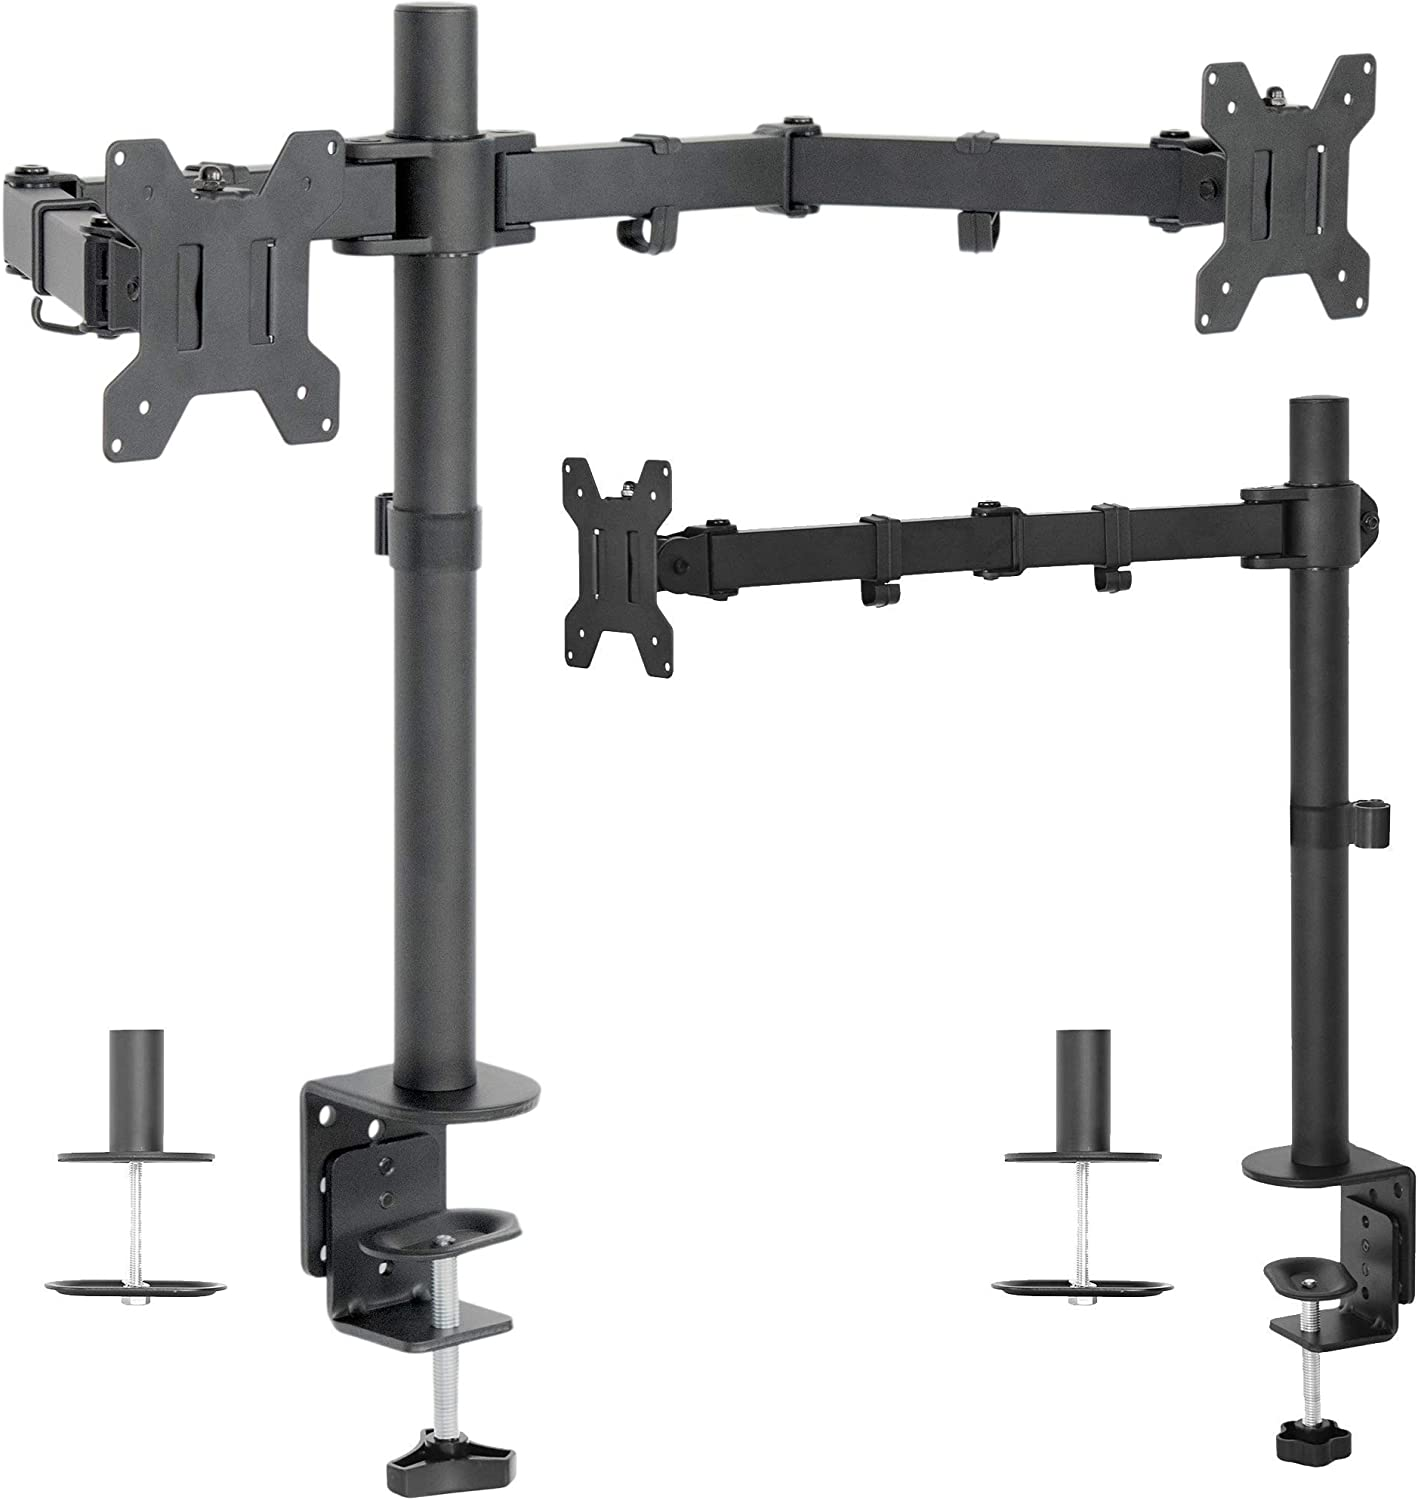 VIVO Single and Dual LCD Monitor Desk Mount Kit for Triple Screen Display, Heavy Duty Fully Adjustable, Fits 3 Screens up to 27 Inches (Bundle)